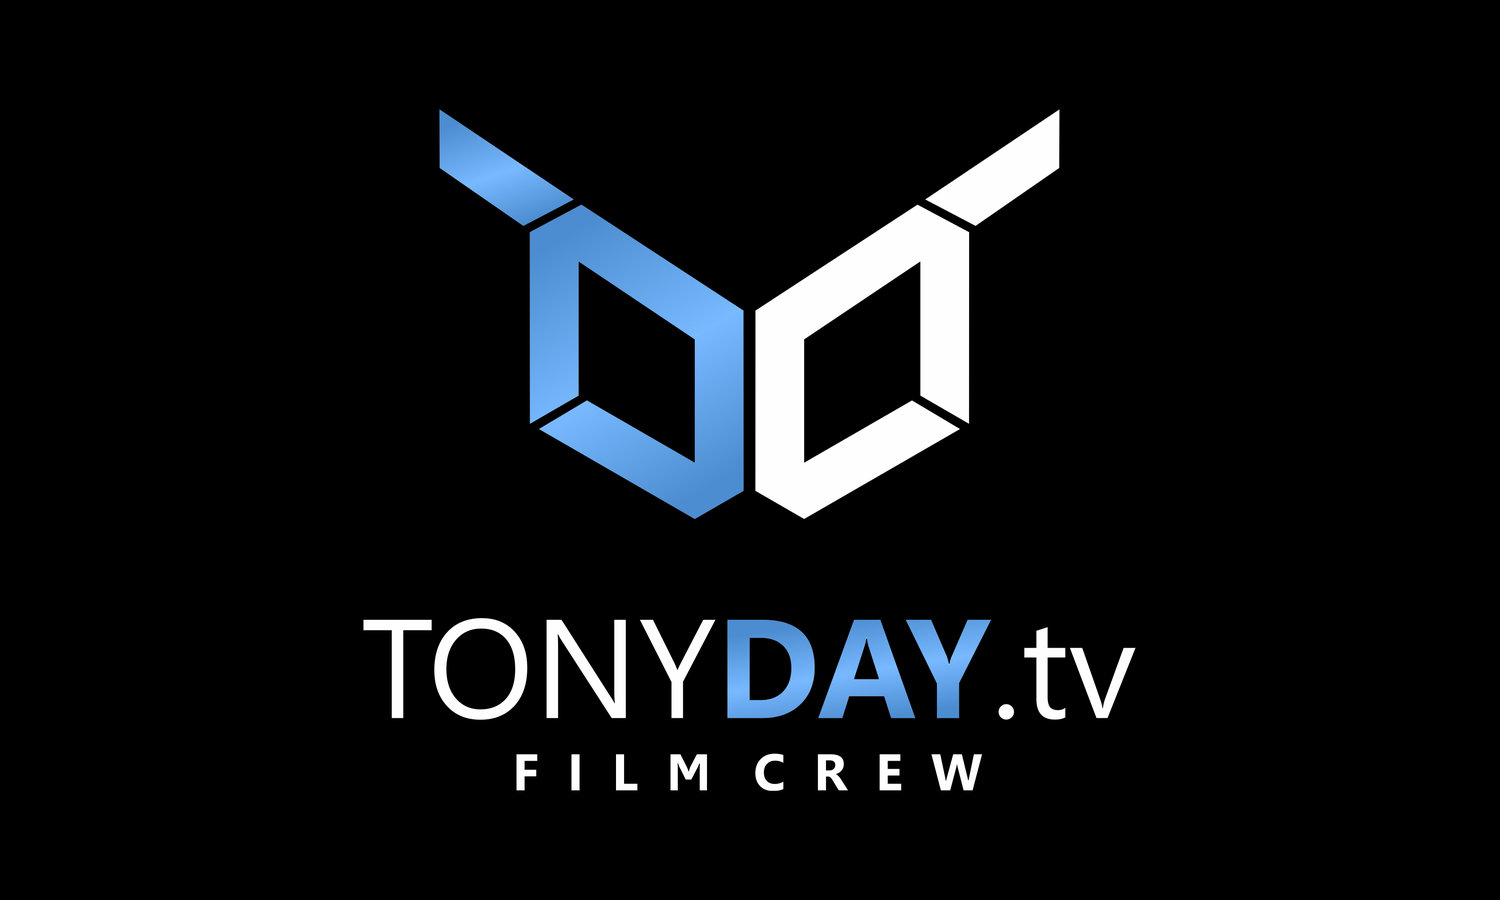 TonyDay.tv